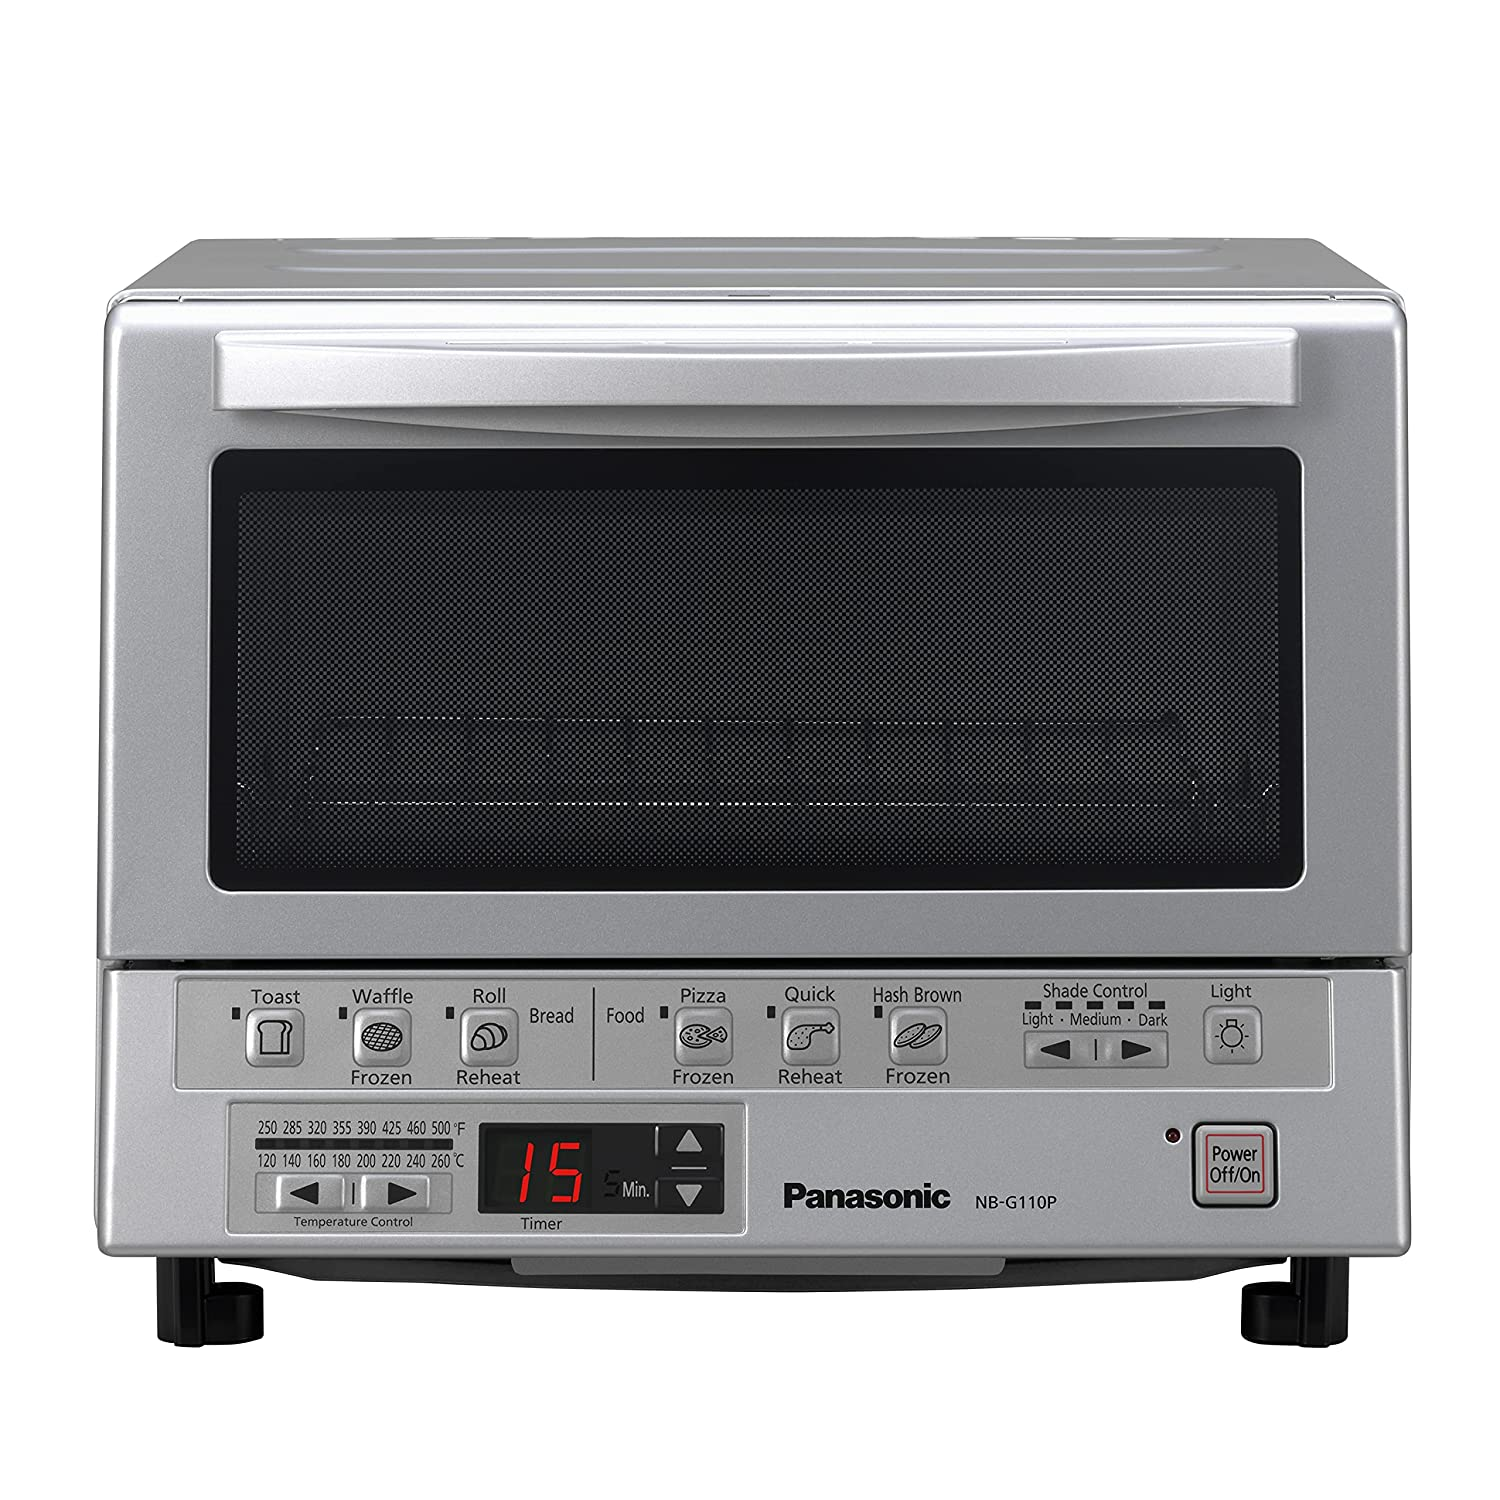 Panasonic NB-G110P 410 gallons Toaster Oven, Silver